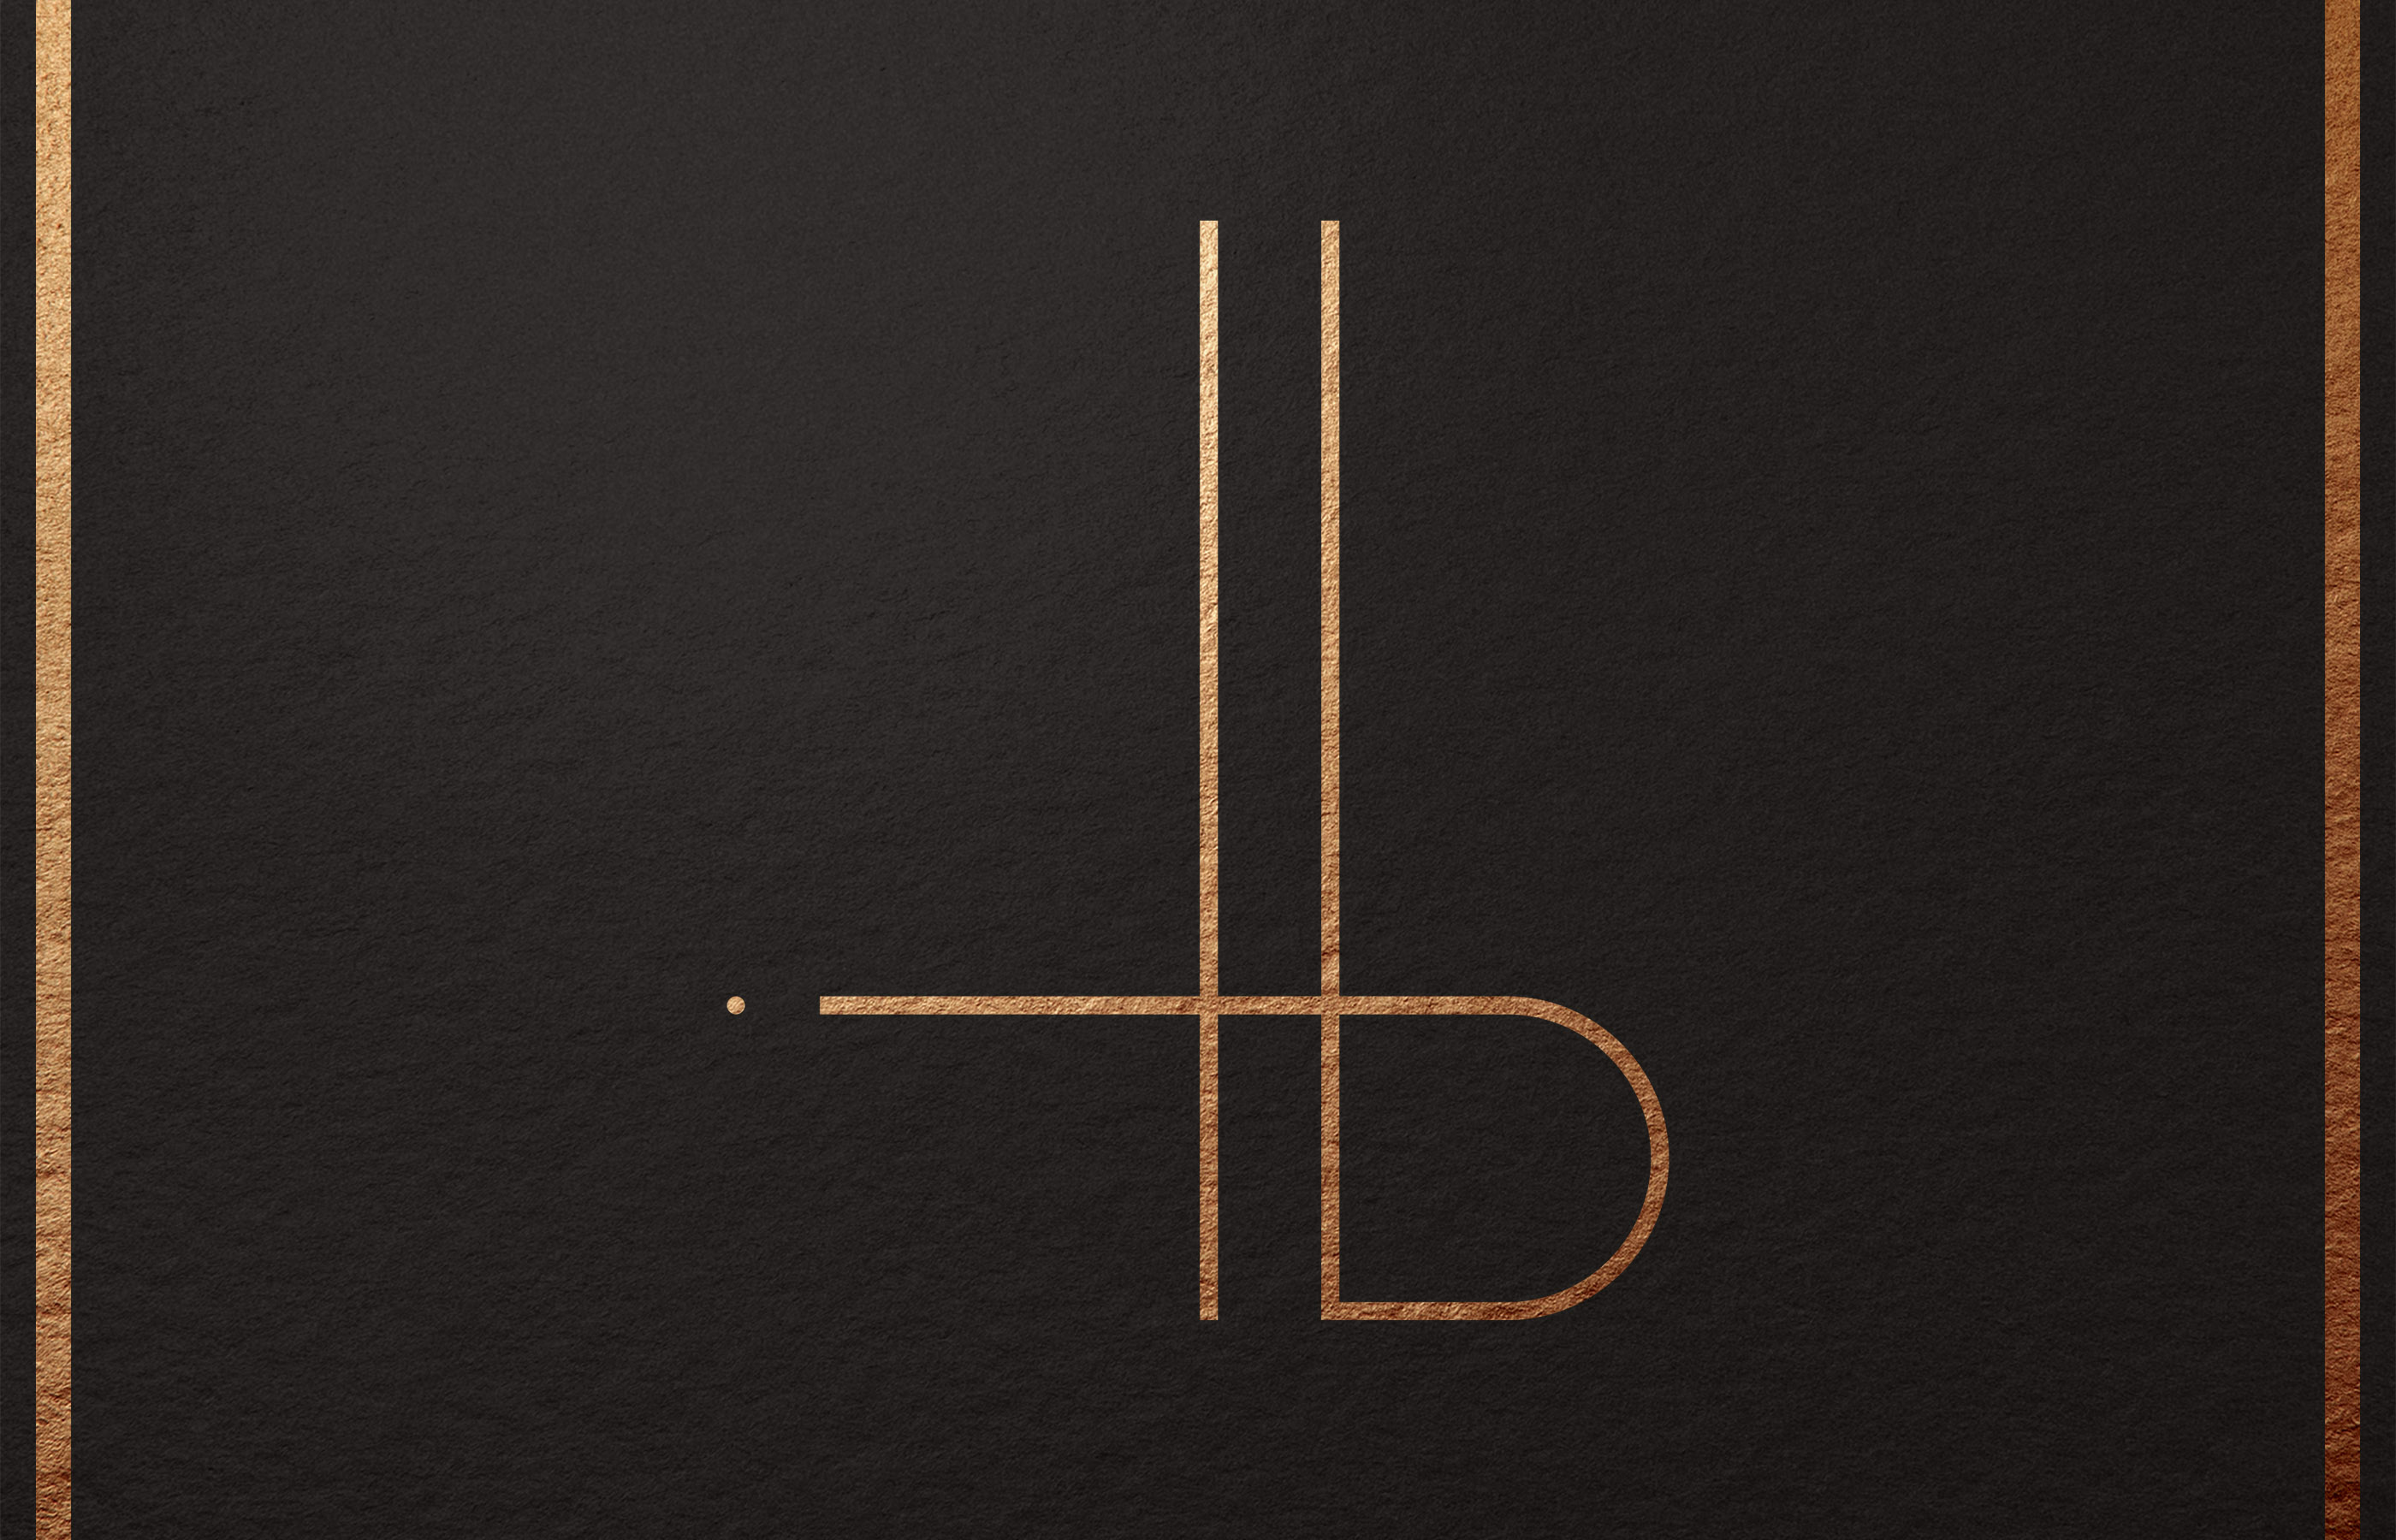 HB Design - Branding Sample 1